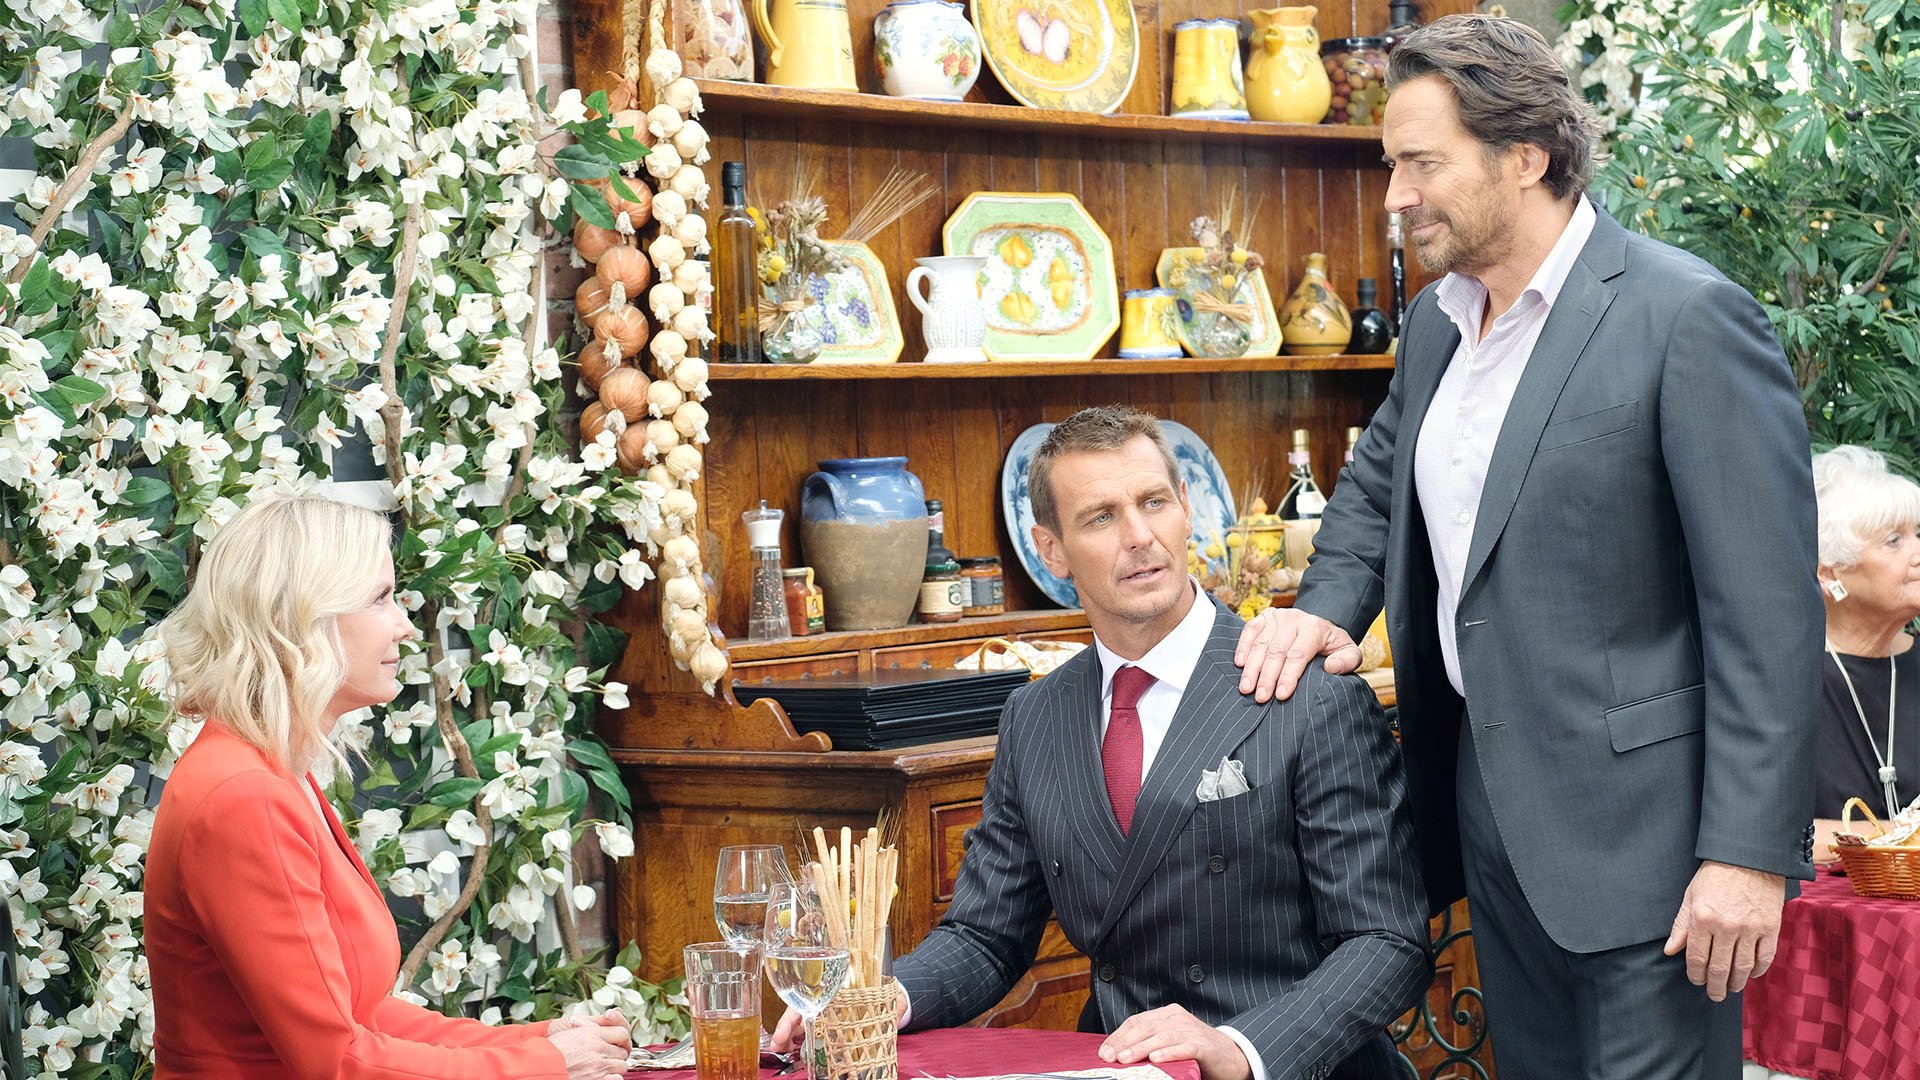 Ridge is blindsided when he learns of Thorne's current living arrangement.